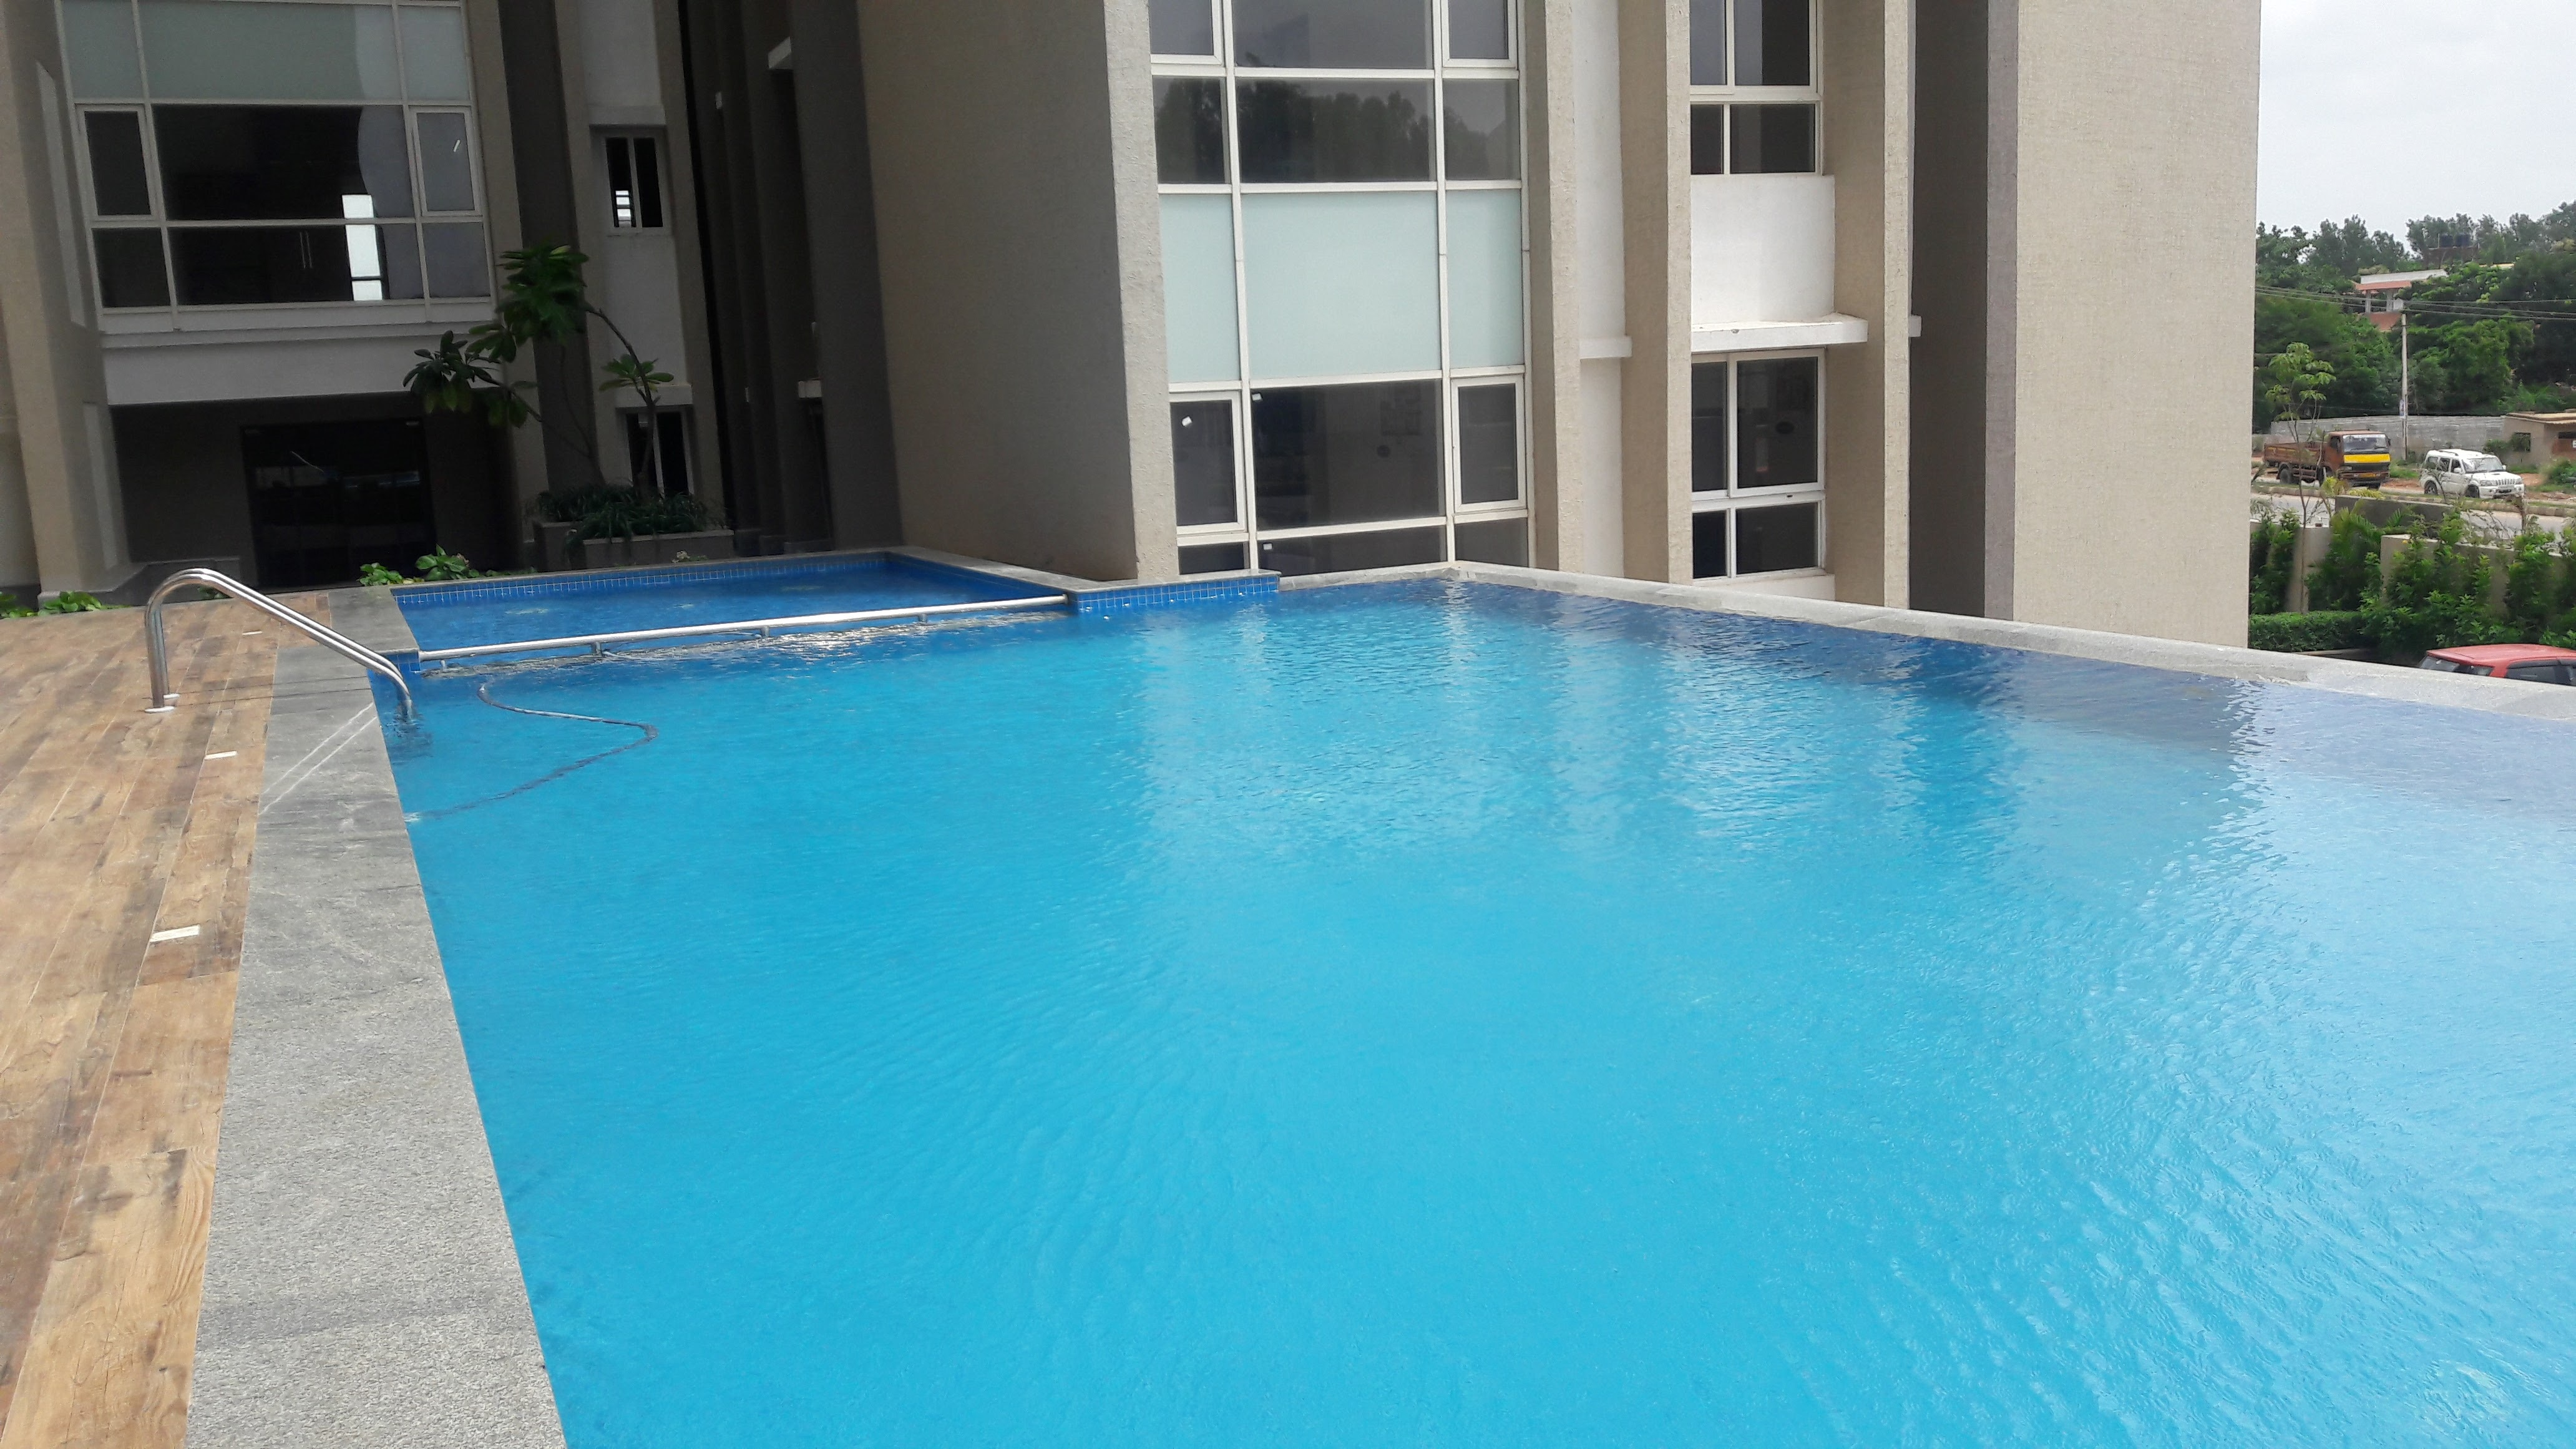 Swimming Pool and Fountain Contractors in Bangalore . We undertake design and construction of swimming pools, fountains and water bodies across all south Indian locations.  Infinity Swimming pool Created by Team Water Works for Salarpuria Sattva Aspire Project @ Bangalore